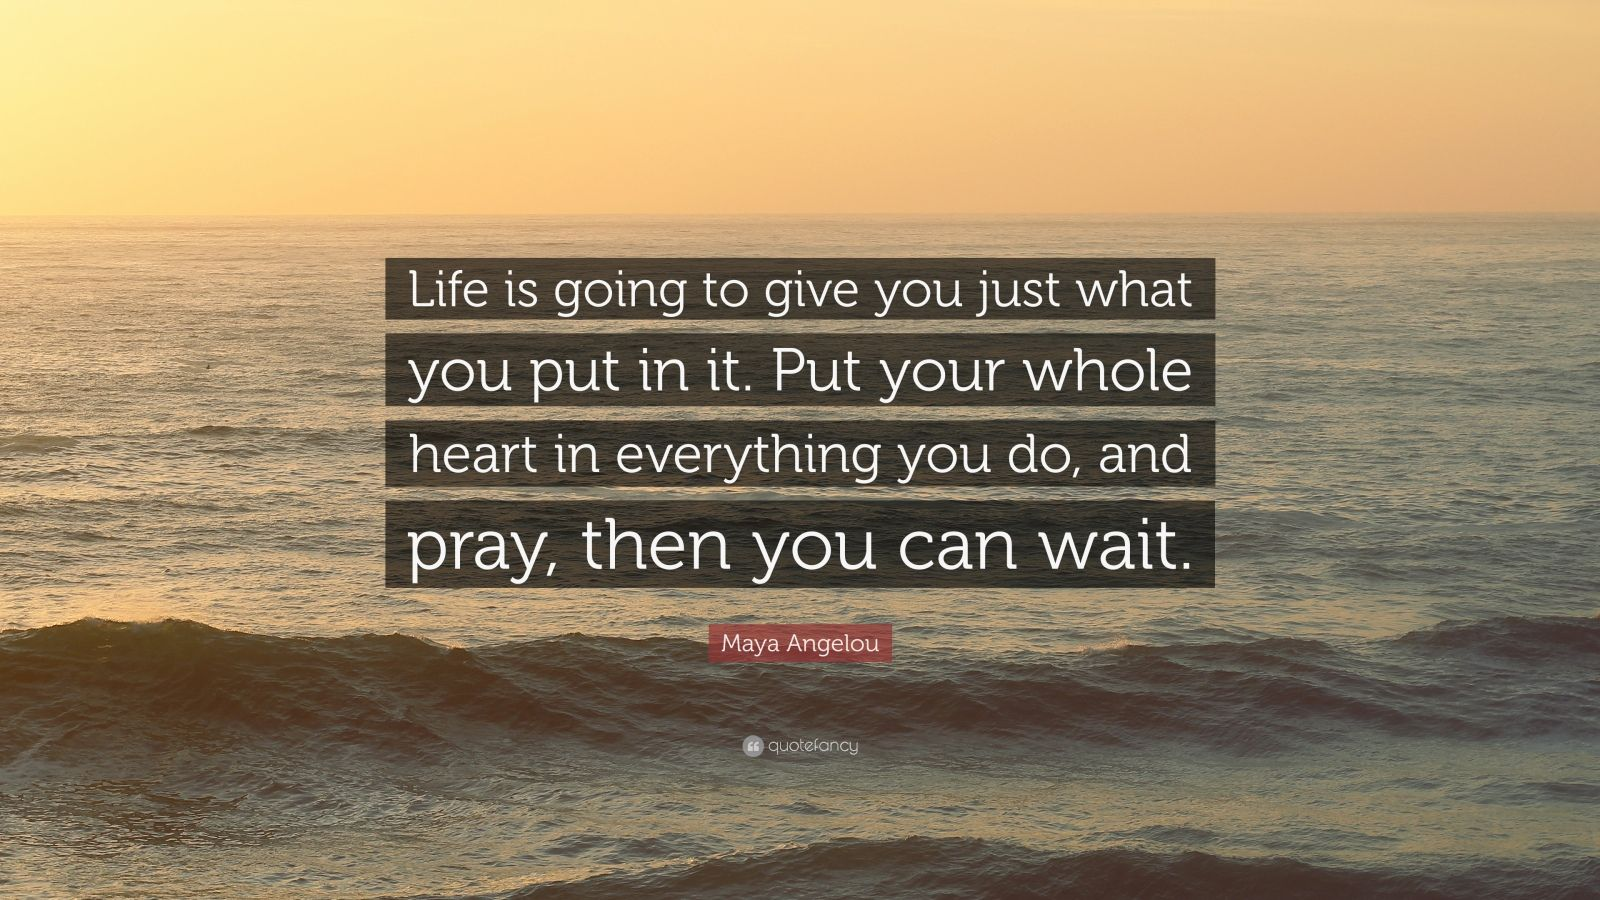 "Maya Angelou Quote: ""Life is going to give you just what you put in it. Put your whole heart in everything you do, and pray, then you can wait."""